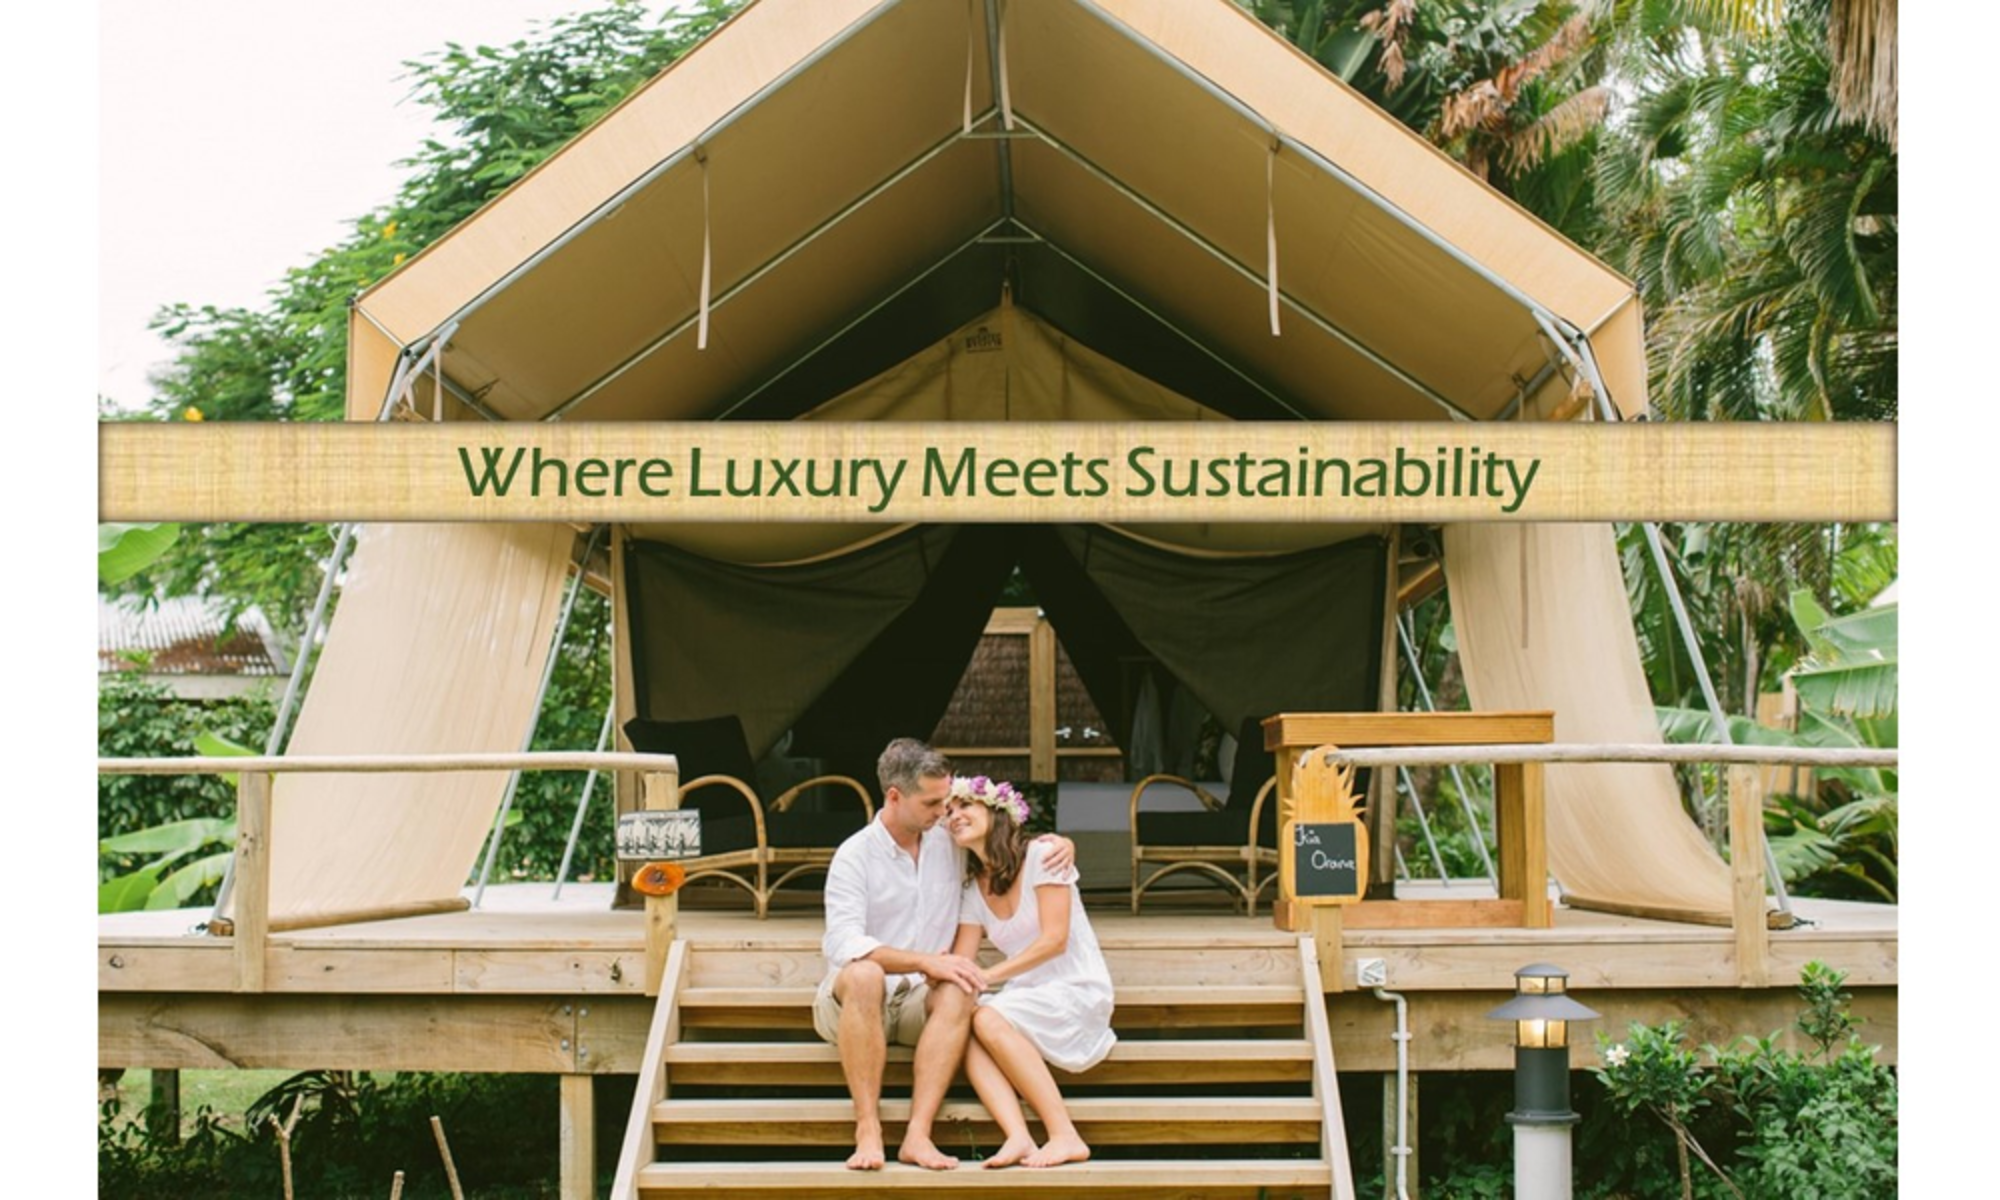 HERO where luxury meets sustainability